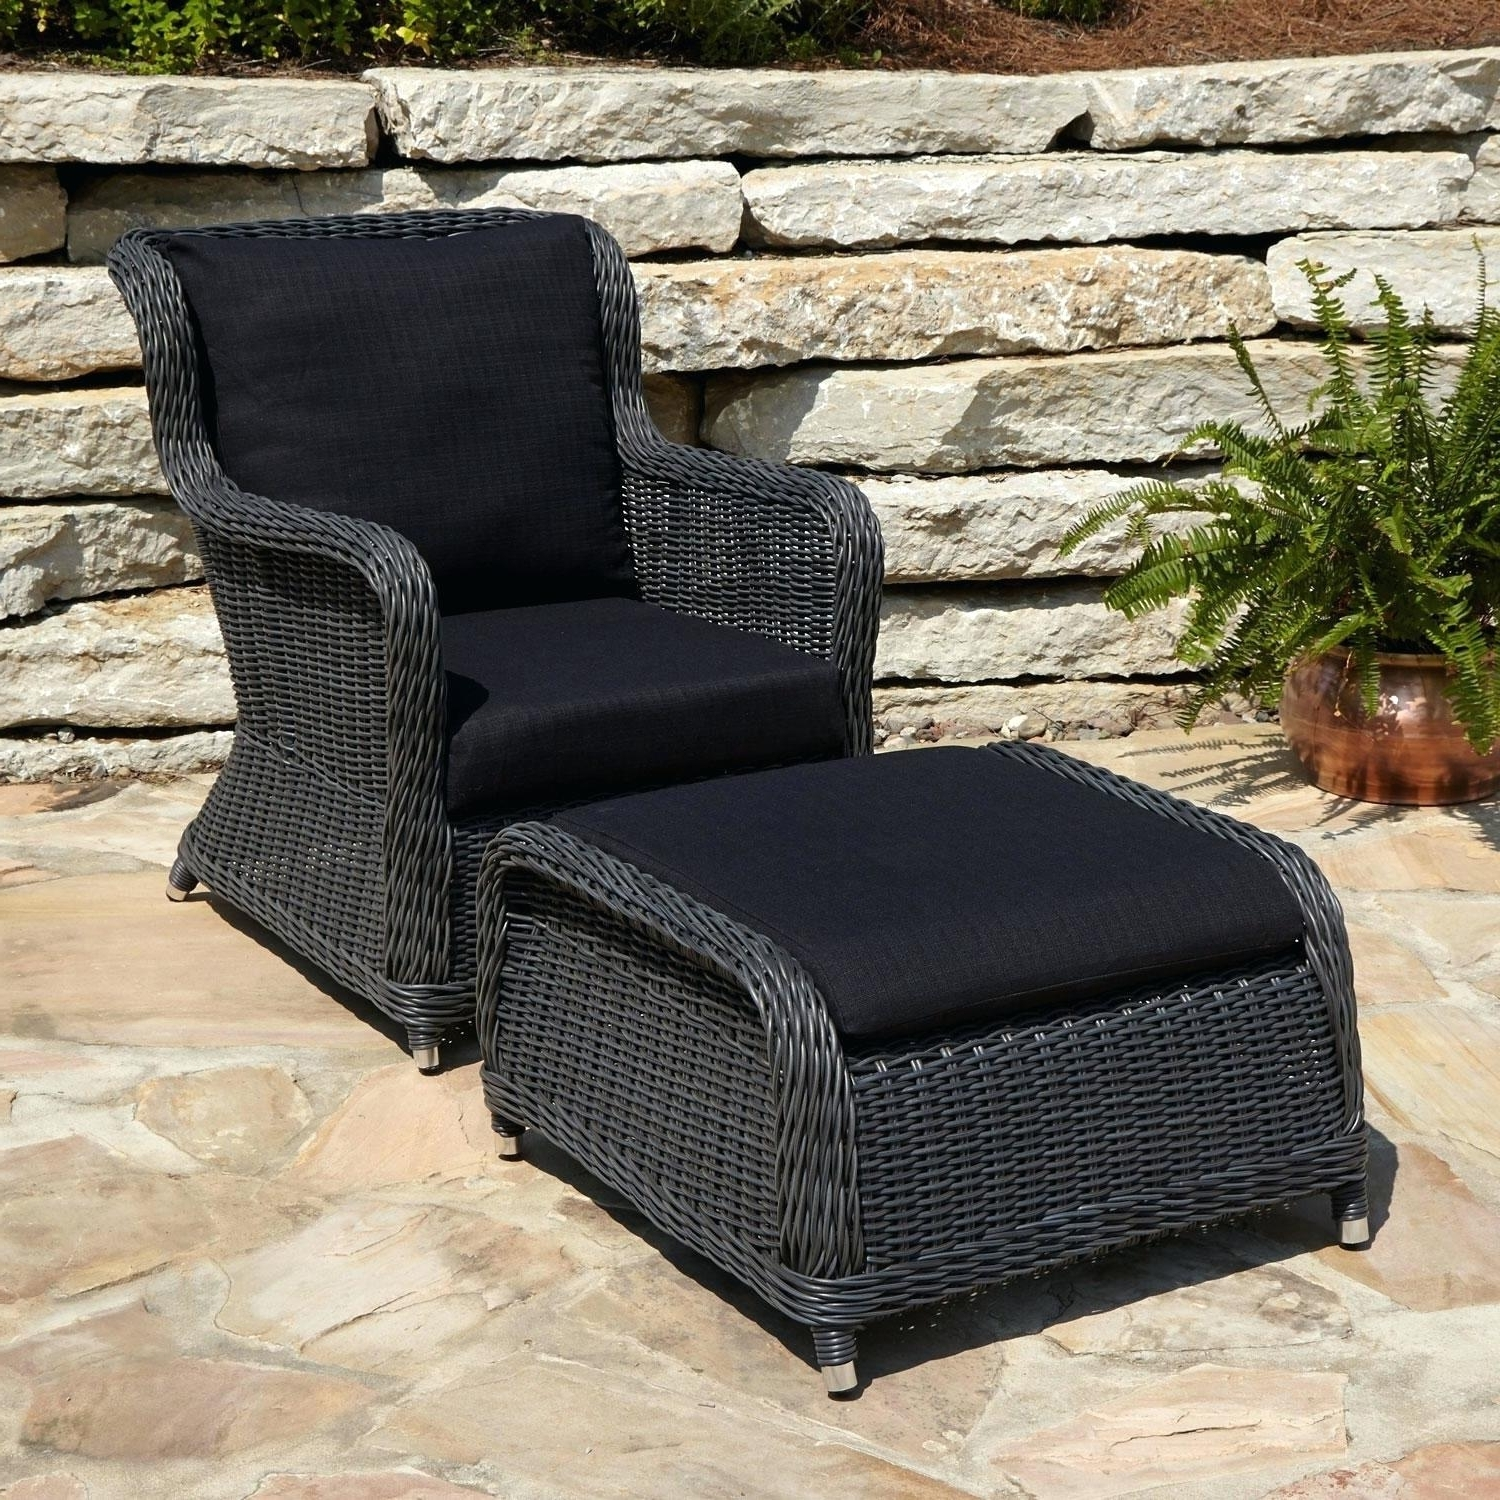 Resin Patio Furniture Sets Chair Pier One Wicker Conversation Blue In Well Known Pier One Patio Conversation Sets (View 7 of 15)